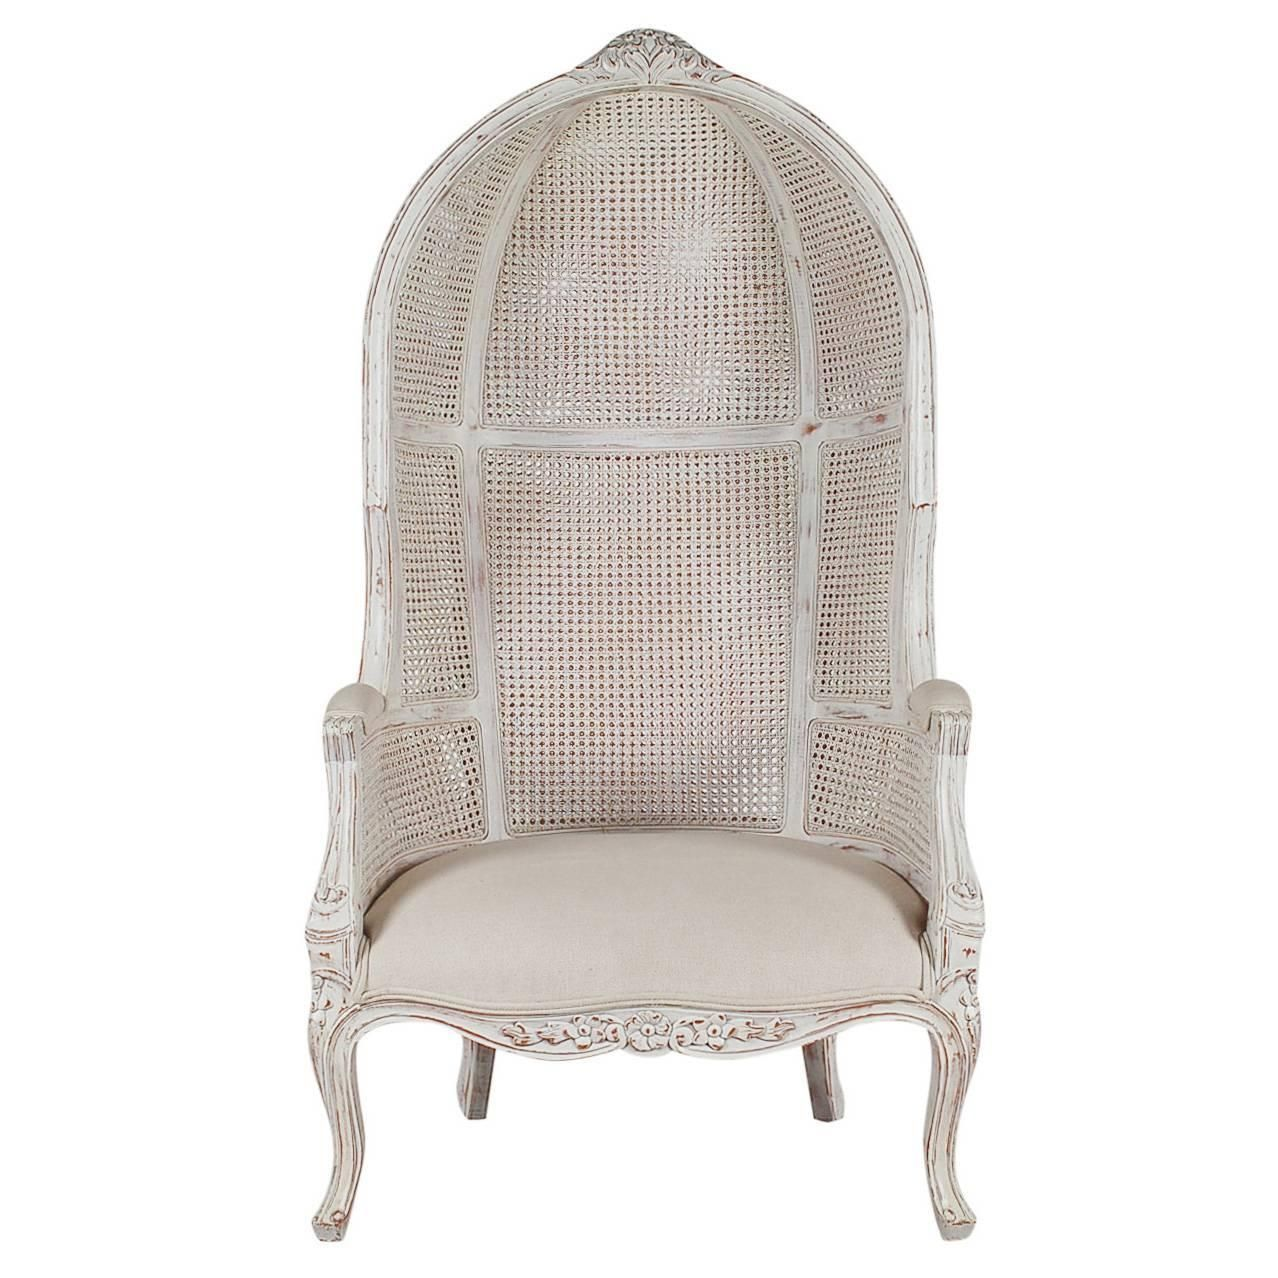 Antique cane chair styles - French Style Cane Wingback Canopy Porters Chair